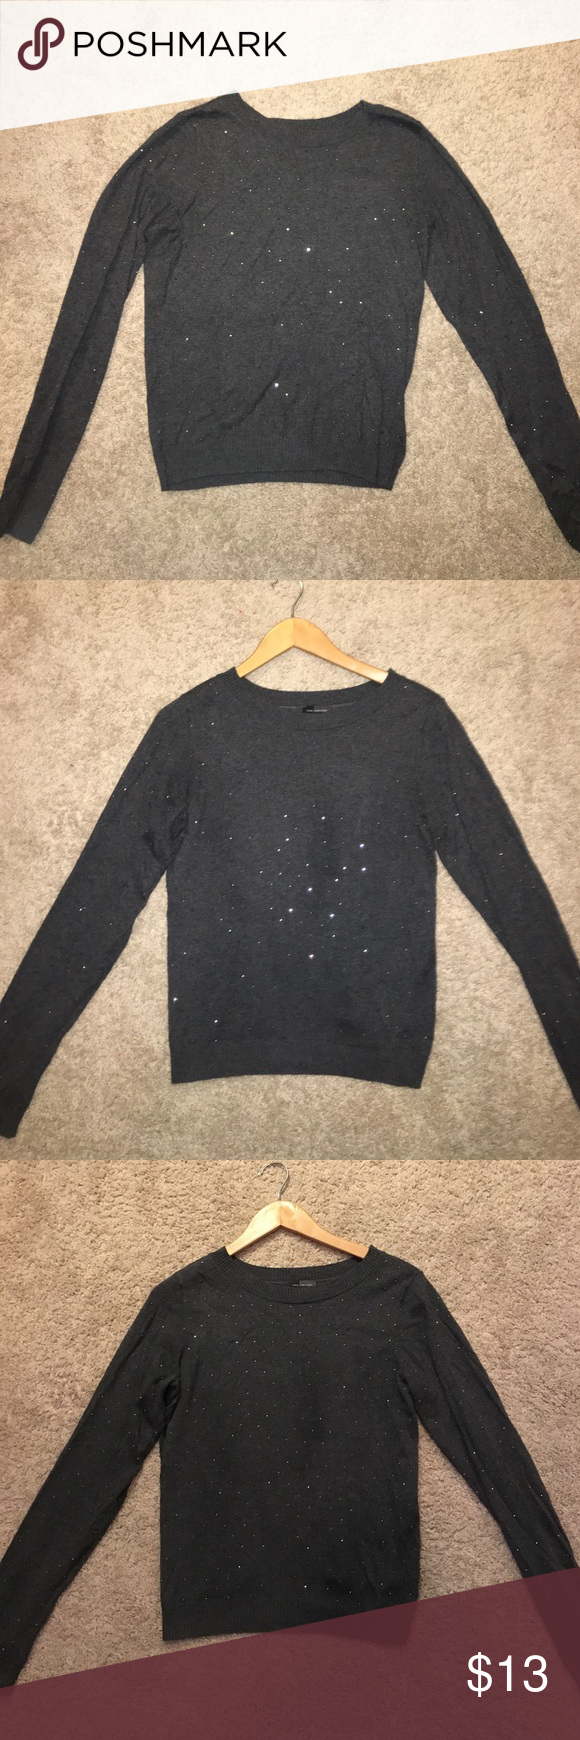 ⭐️ Super Sparkle Sweater from The Limited ⭐️ XS 💟 This Gem is a Dark Gray Sweater from The Limited and has been worn only once!! The front and the sleeves are covered in sparkling gems 💎 making it an elegant piece!! Able to be worn with jeans as a snazzy every day outfit, or it can be super dressy, worn with slacks or a skirt for a business interview, a classy job or a night on the town!!! *The picture does this beauty no justice* This shirt is a one of a kind as The Limited had gone out…